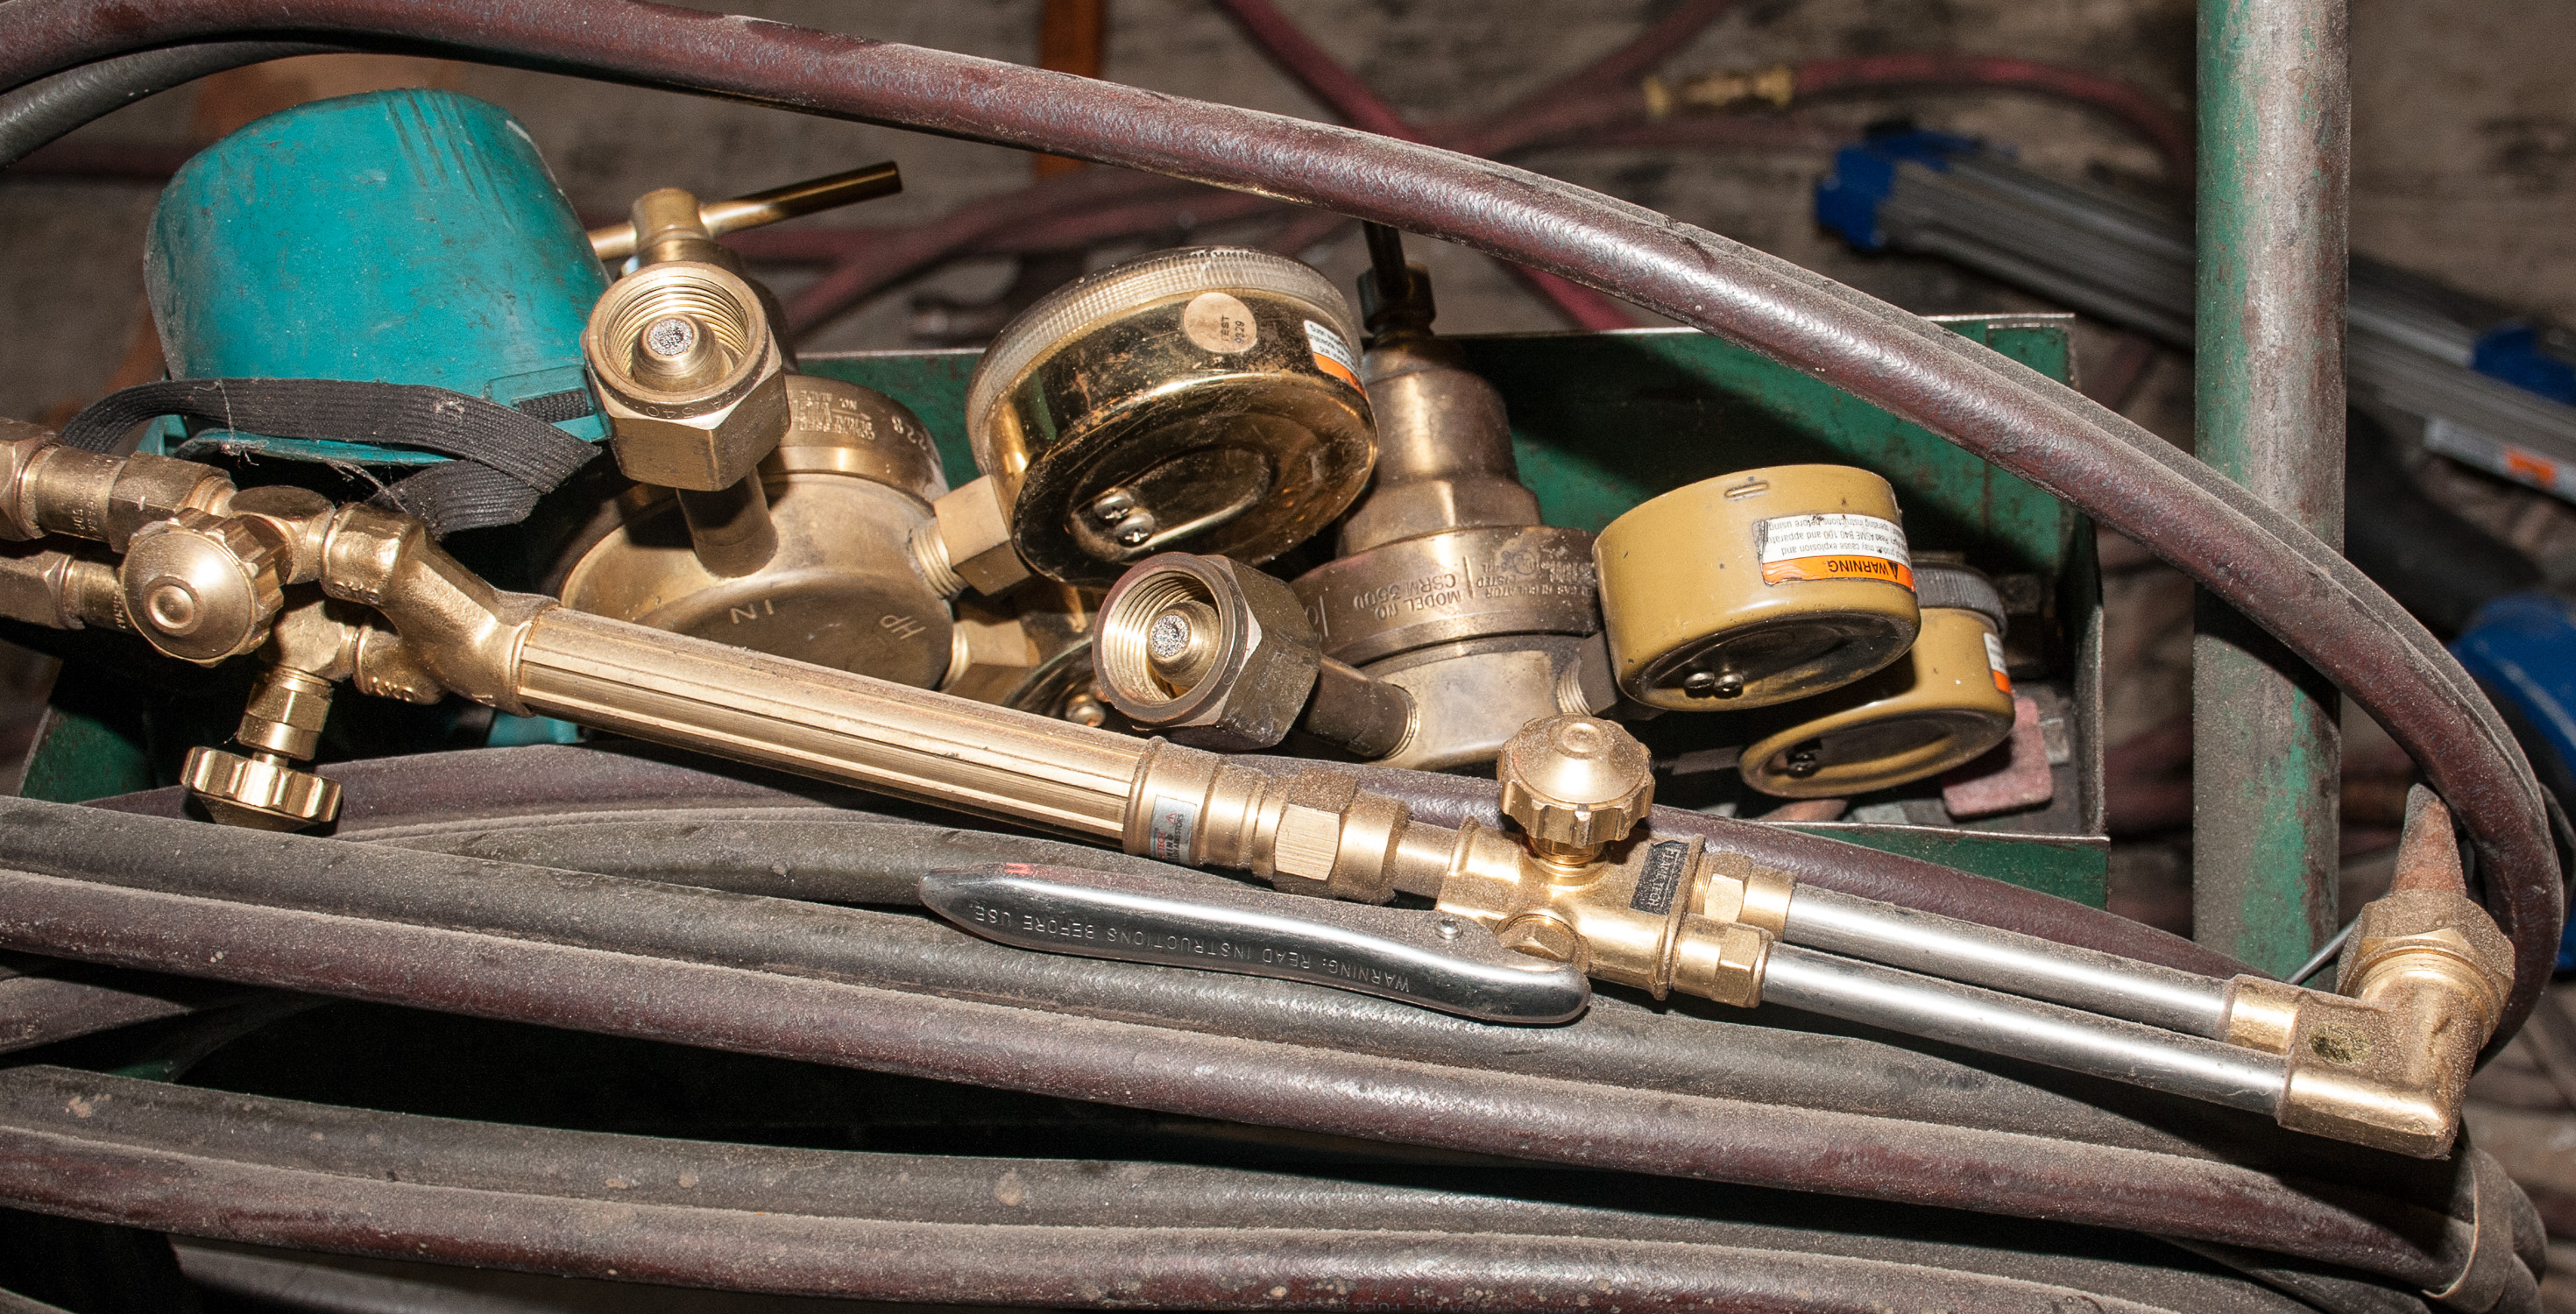 Welding Gas Cart w/ Torch, Hoses and Several Regulators - Image 2 of 2